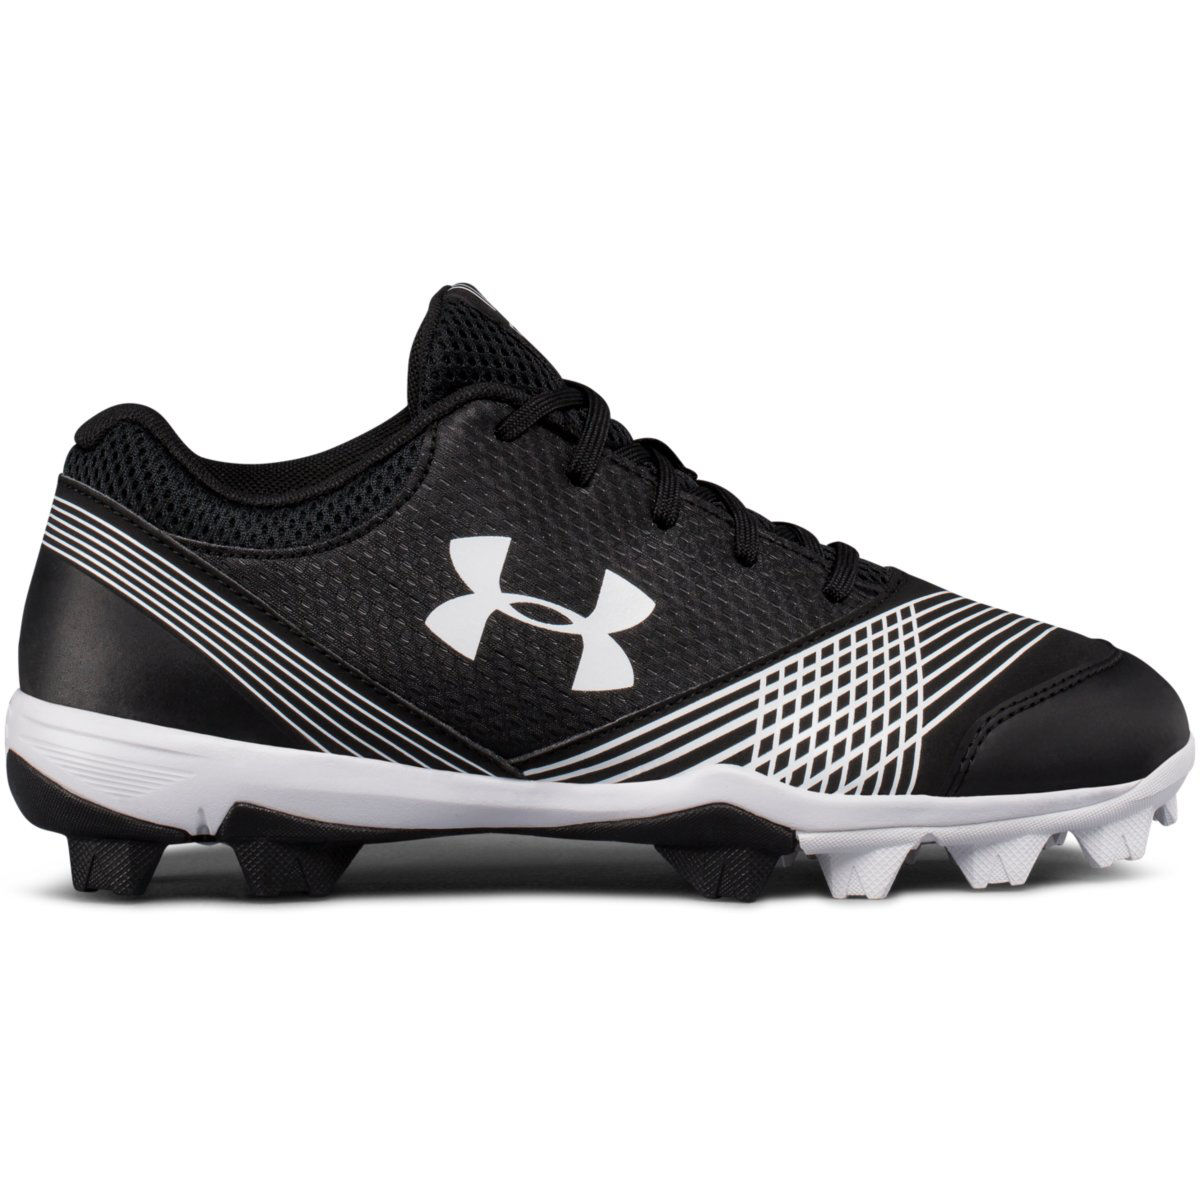 Under Armour Glyde Rubber Molded Womens Softball Cleat